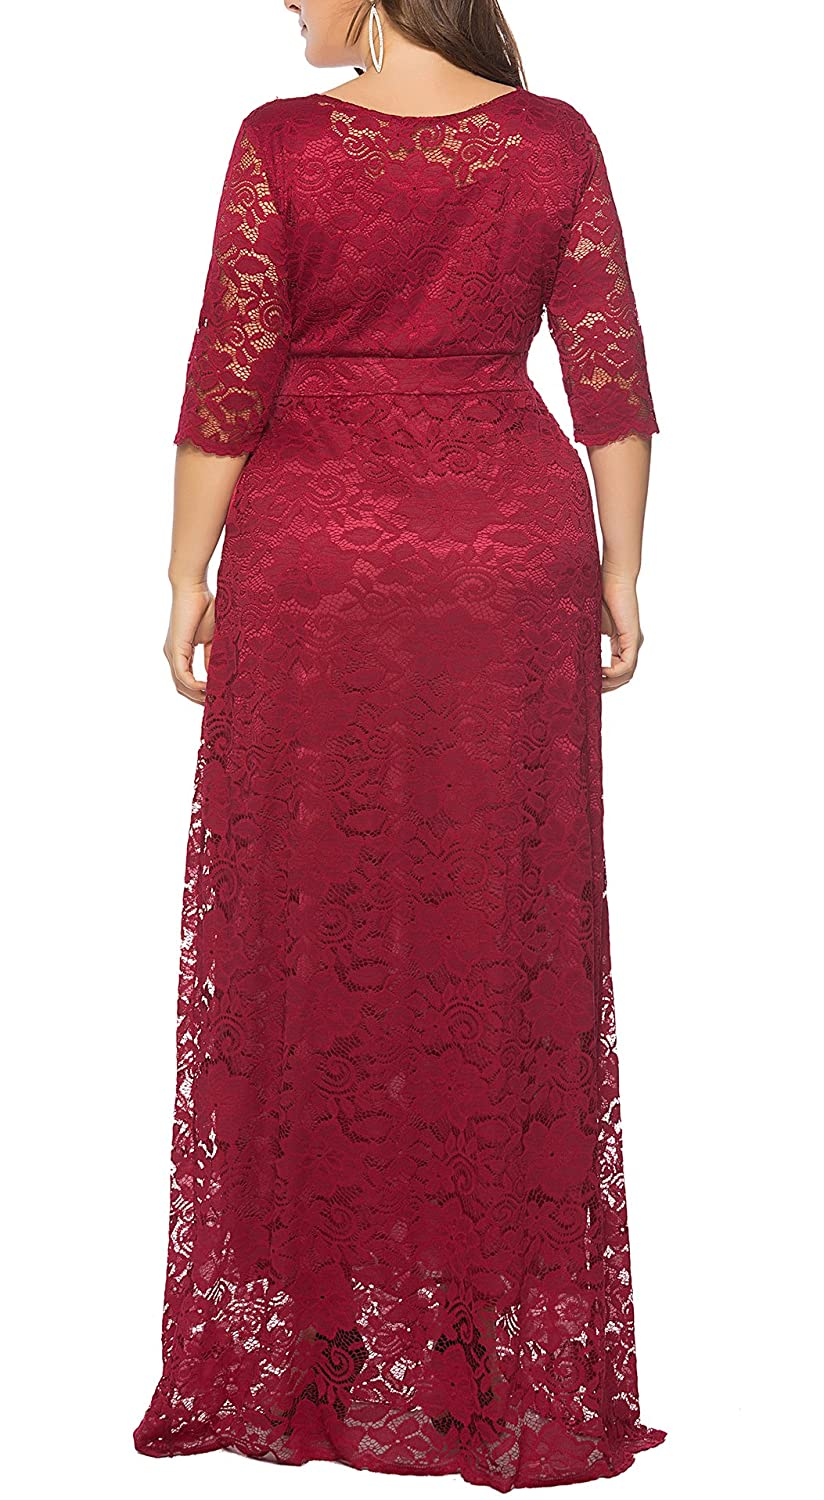 02c9a812141 Eternatastic Womens Floral Lace 2 3 Sleeves Maxi Dress Plus Size Evening  Party Dress